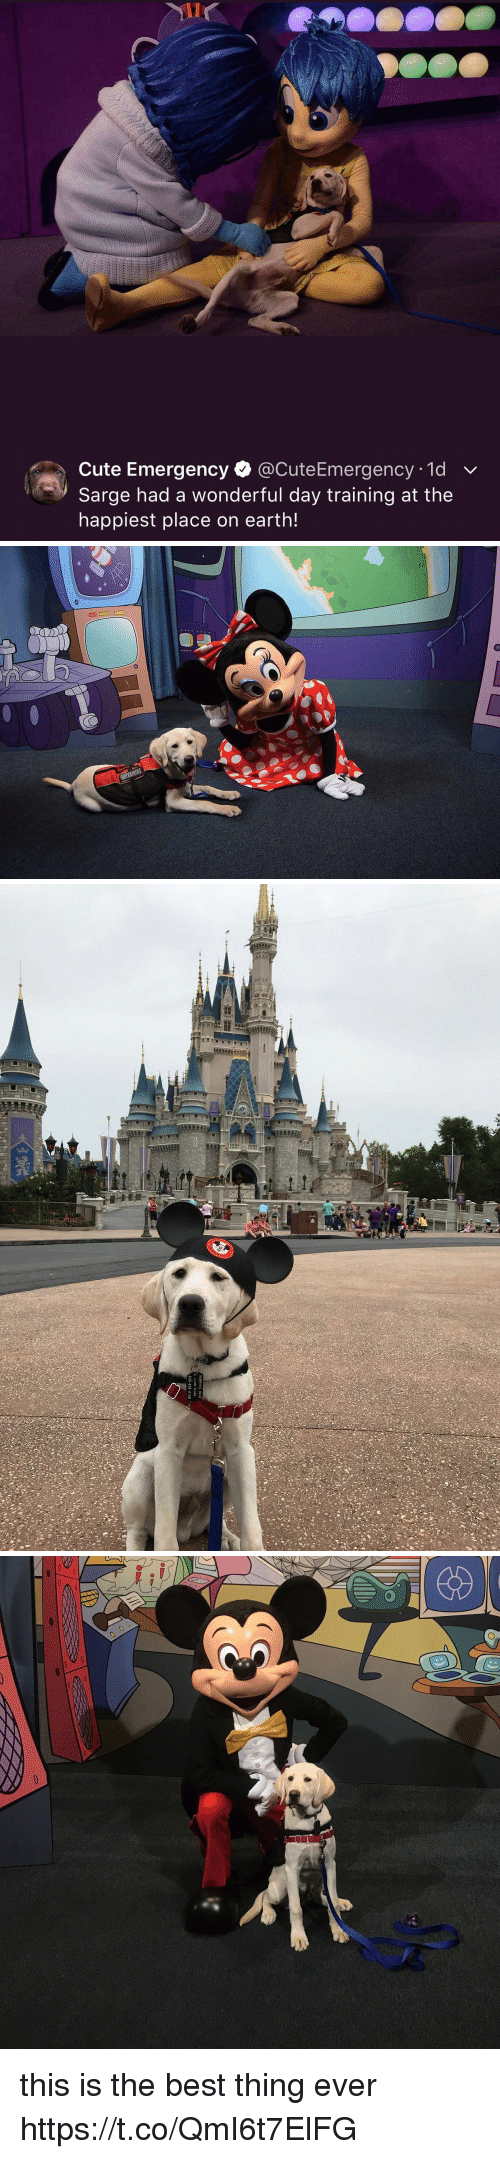 Cute, Best, and Earth: Cute Emergency. @CuteEmergency. 1d  Sarge had a wonderful day training at the  happiest place on earth! this is the best thing ever https://t.co/QmI6t7ElFG